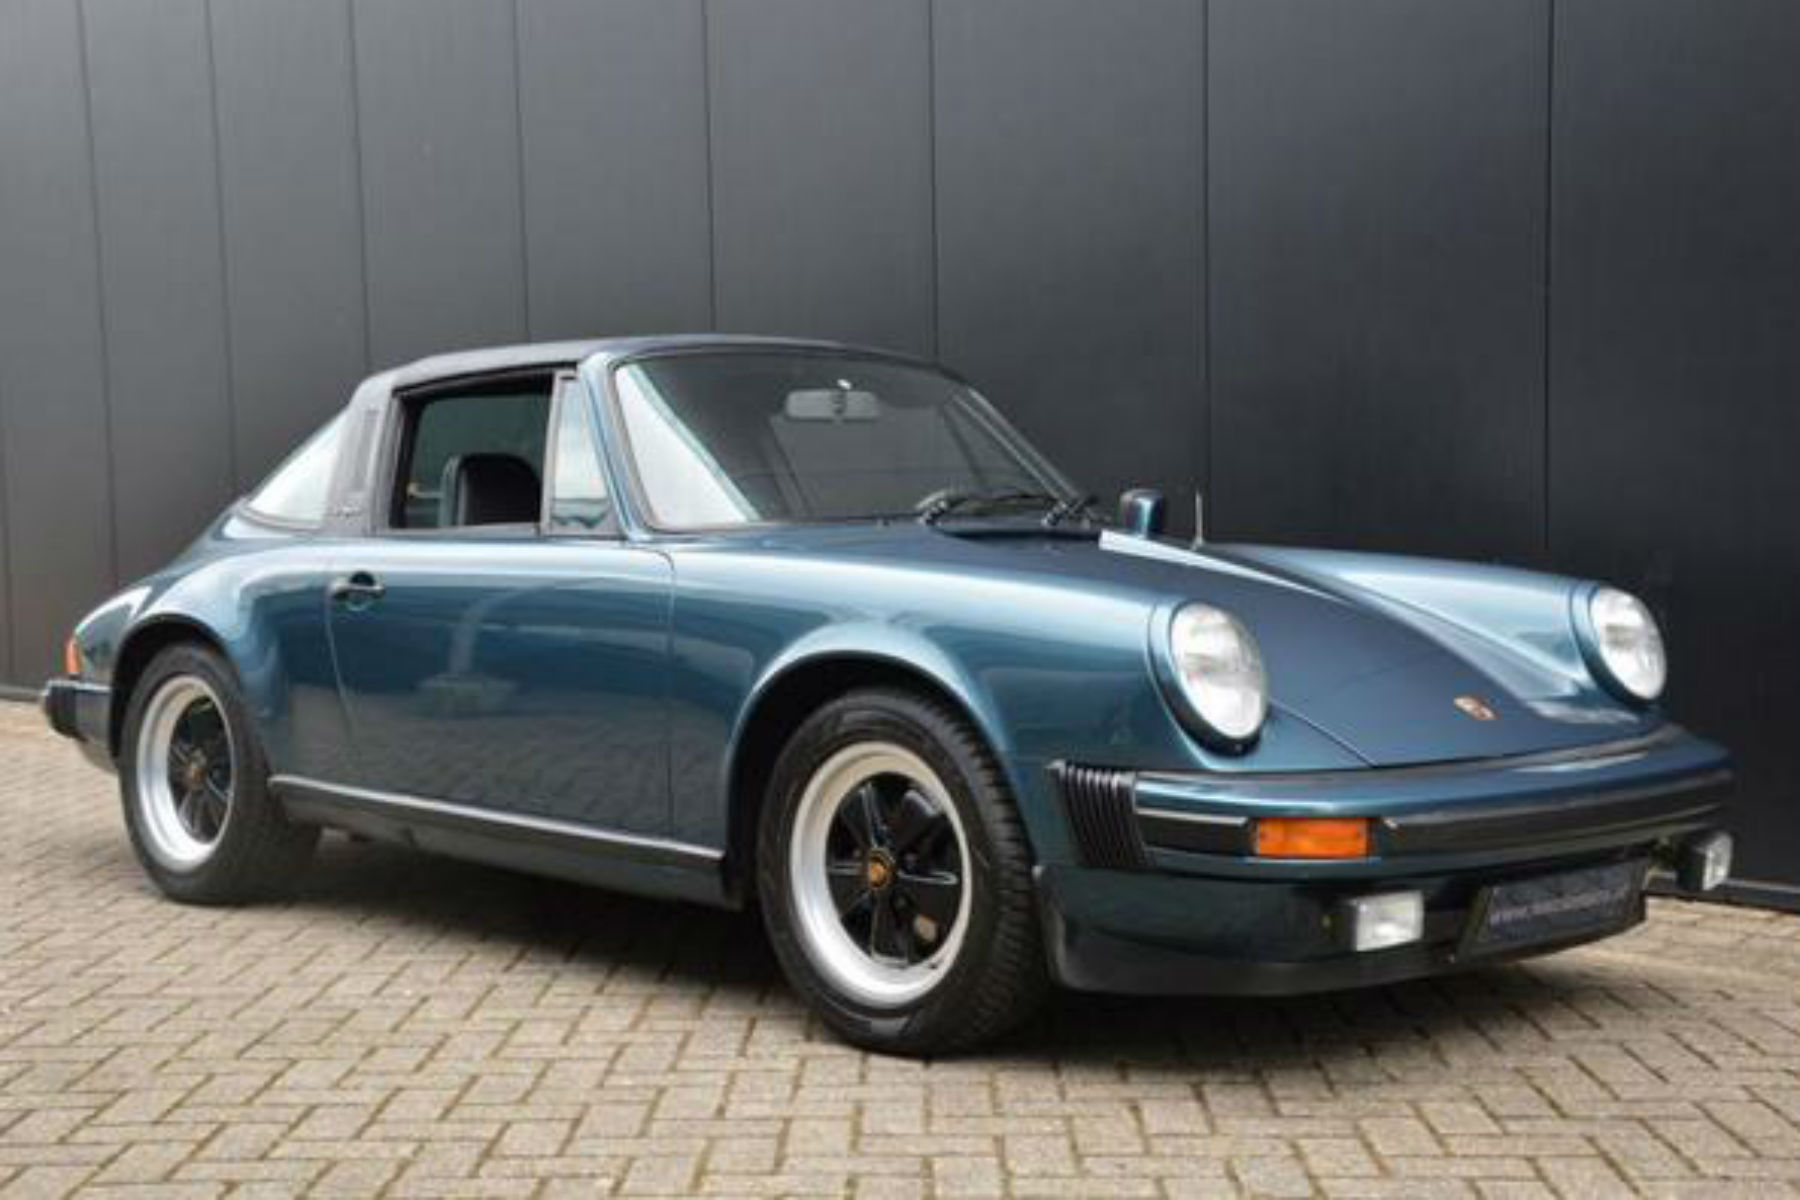 08_Classic Cars_Pmphacets Twitter